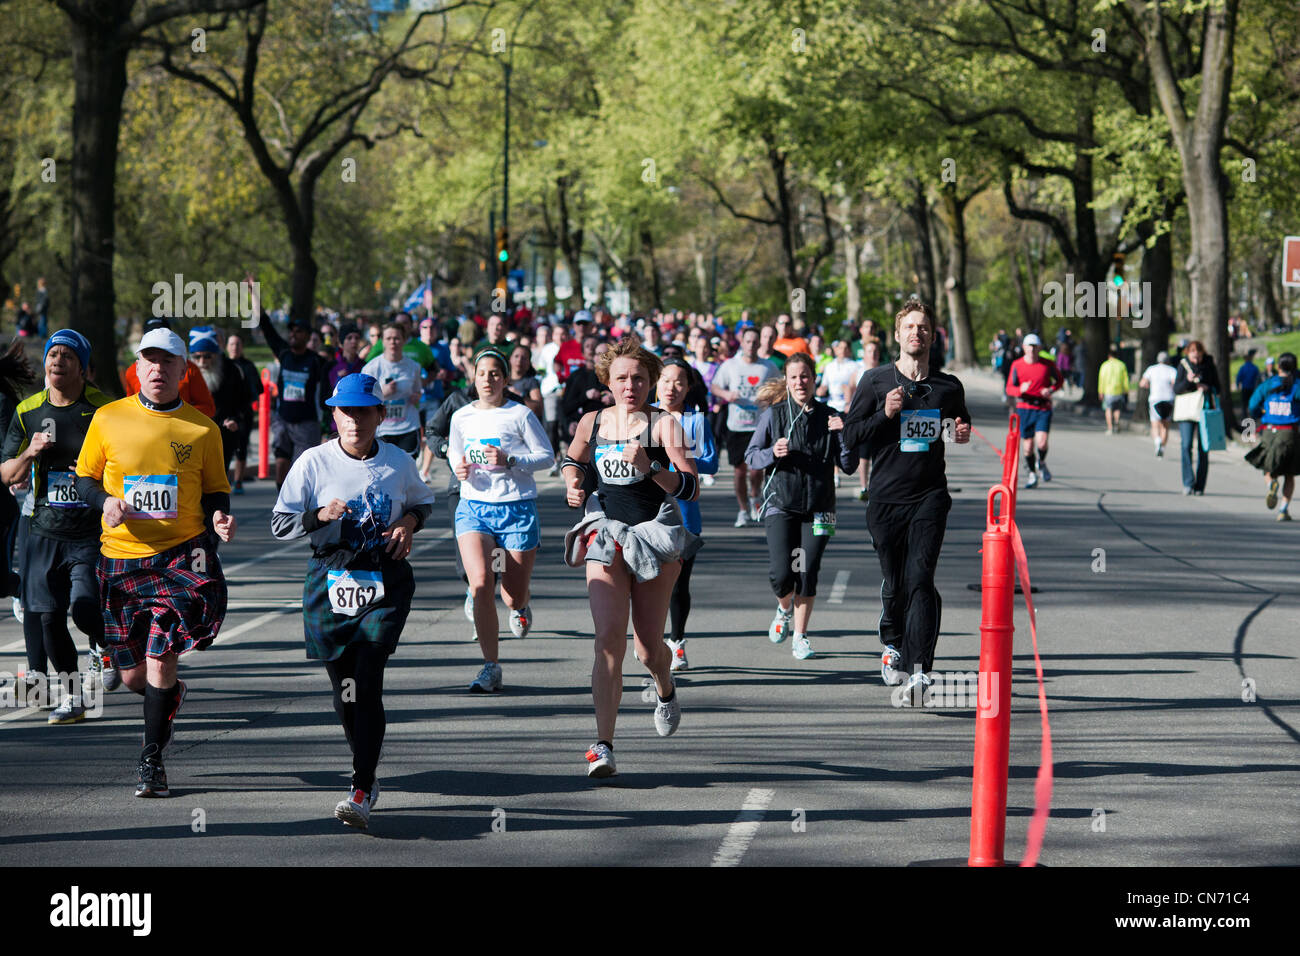 Over 10,000 runners race around Central Park in New York for the 10K Scotland Run - Stock Photo